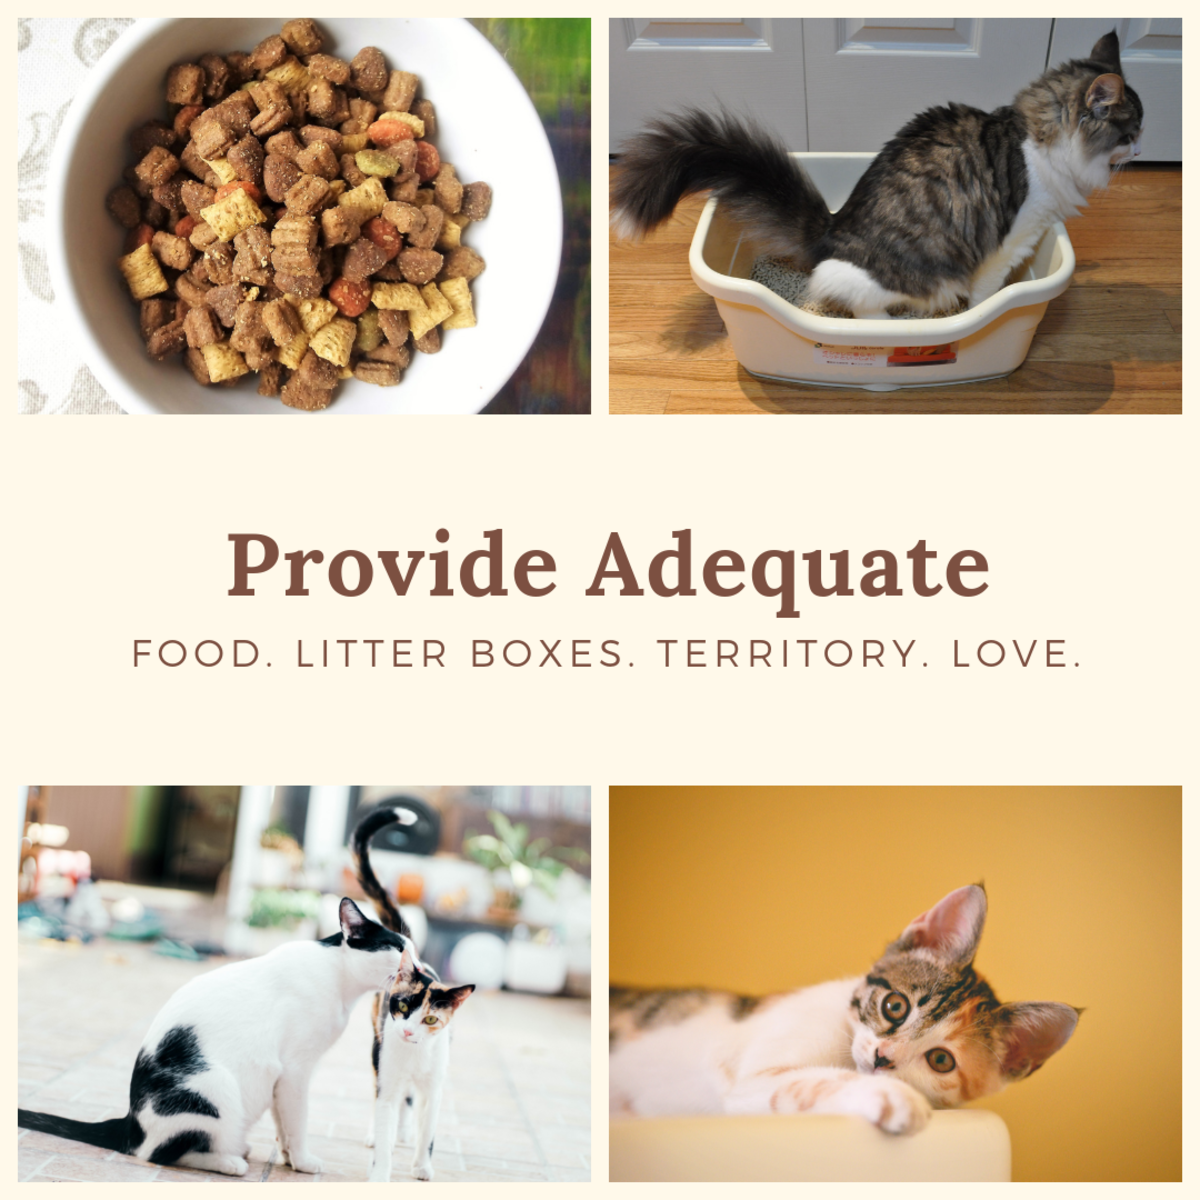 To prevent conflicts in multi-cat households, provide enough of the essentials.